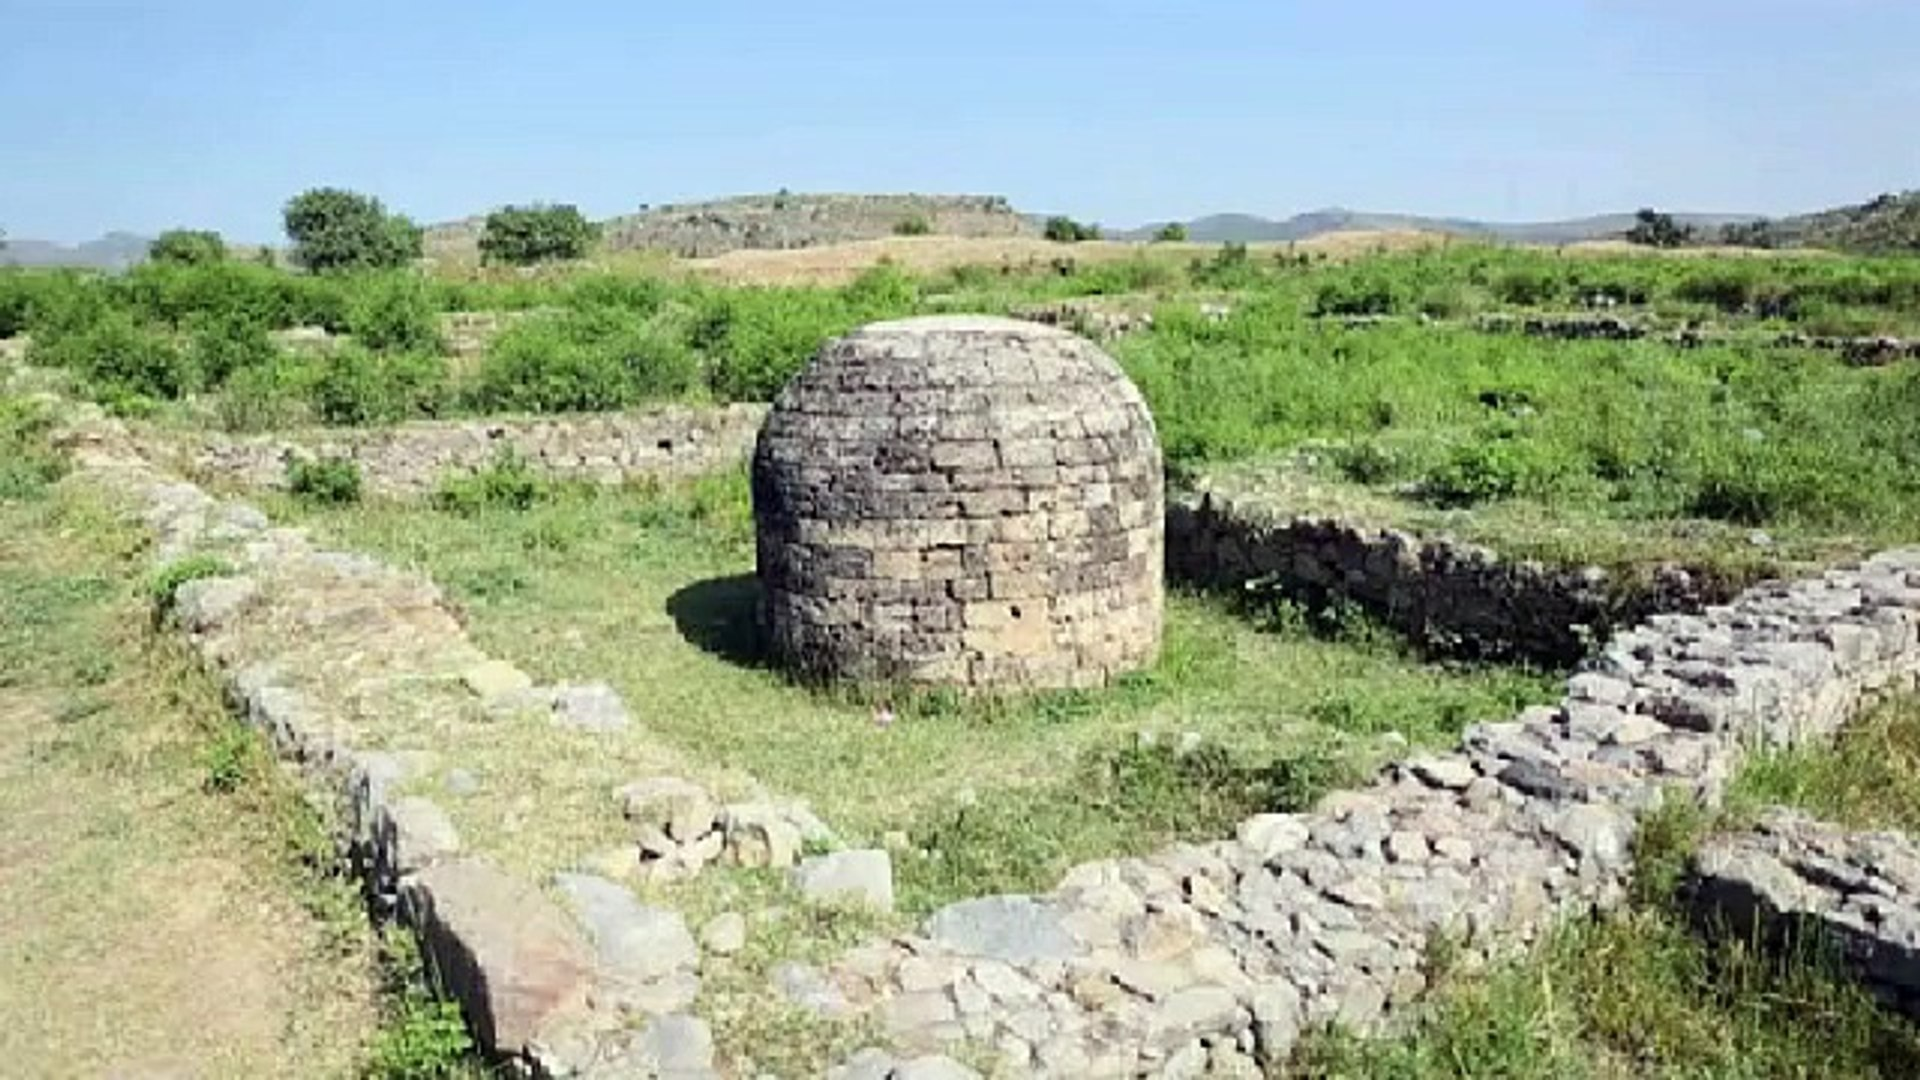 Documentary On The History Of Taxila Urdu Part 1 Video Dailymotion